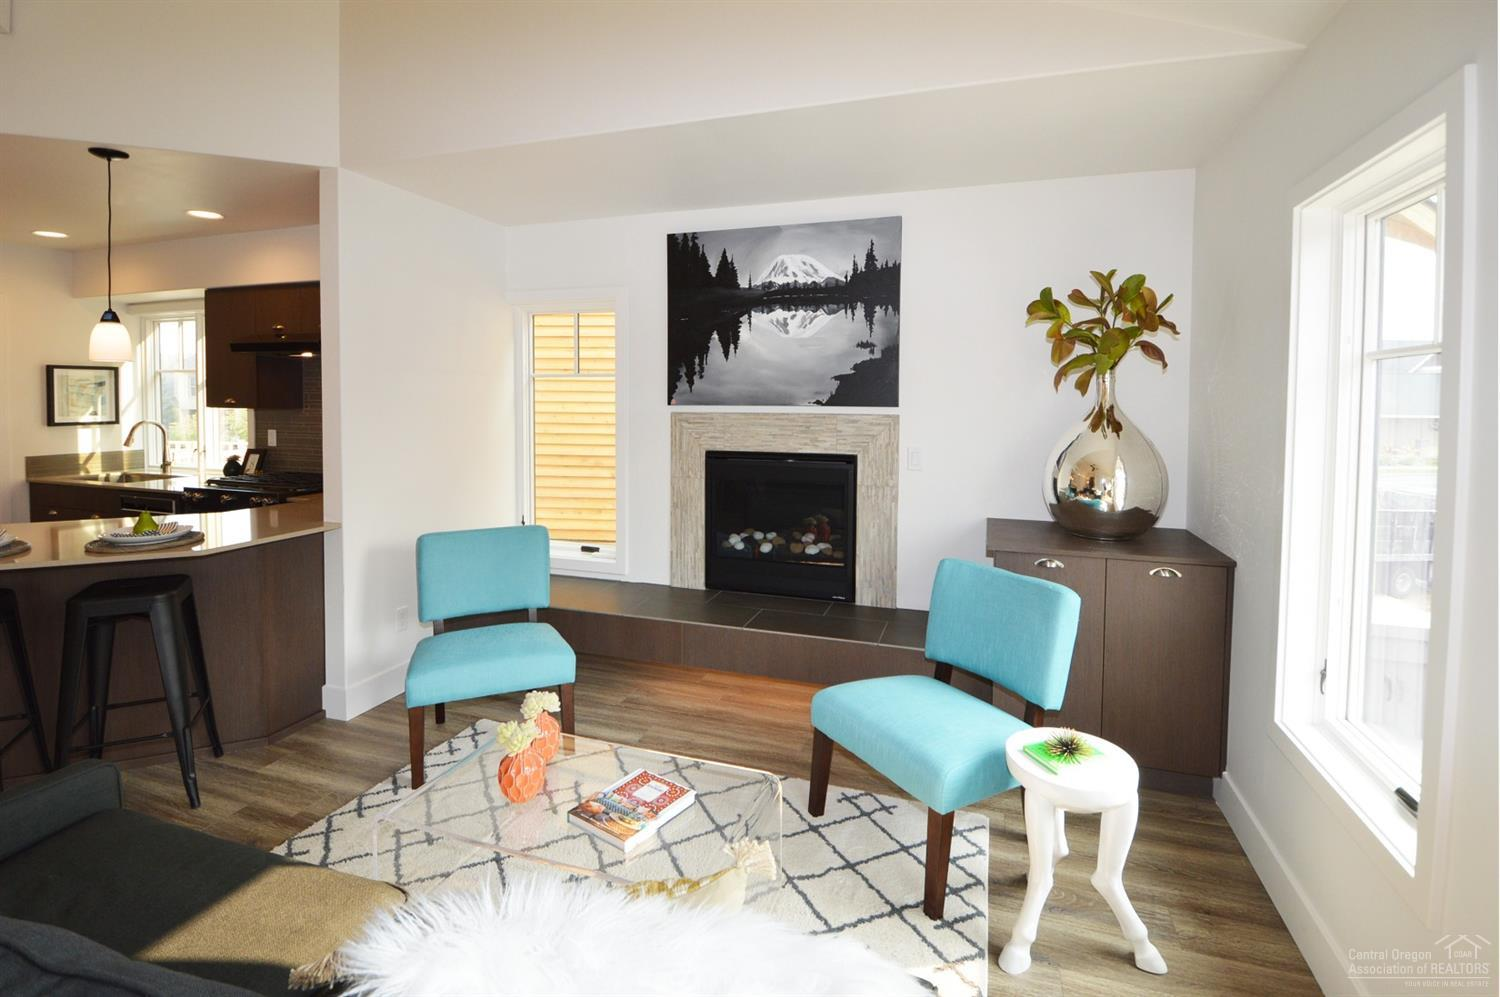 Staged photos of a similar floor plan.Staged photo